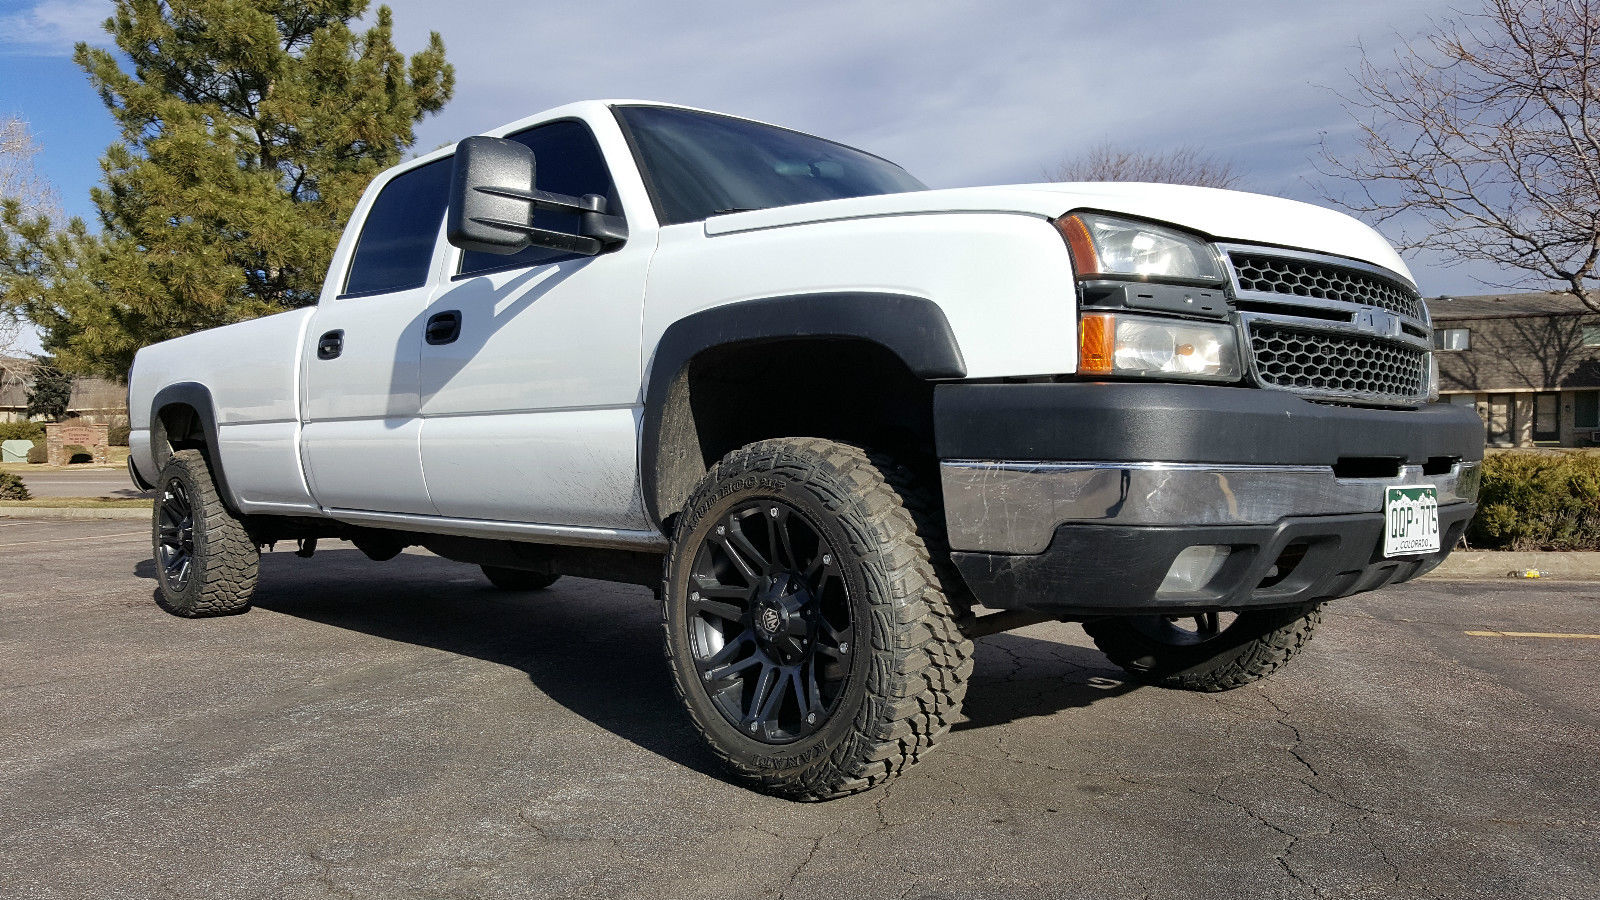 All Chevy chevy 2006 : 2006 Chevy Silverado 2500hd 6.0 Auto Crew Cab Longbed 4×4 Lift Kit ...